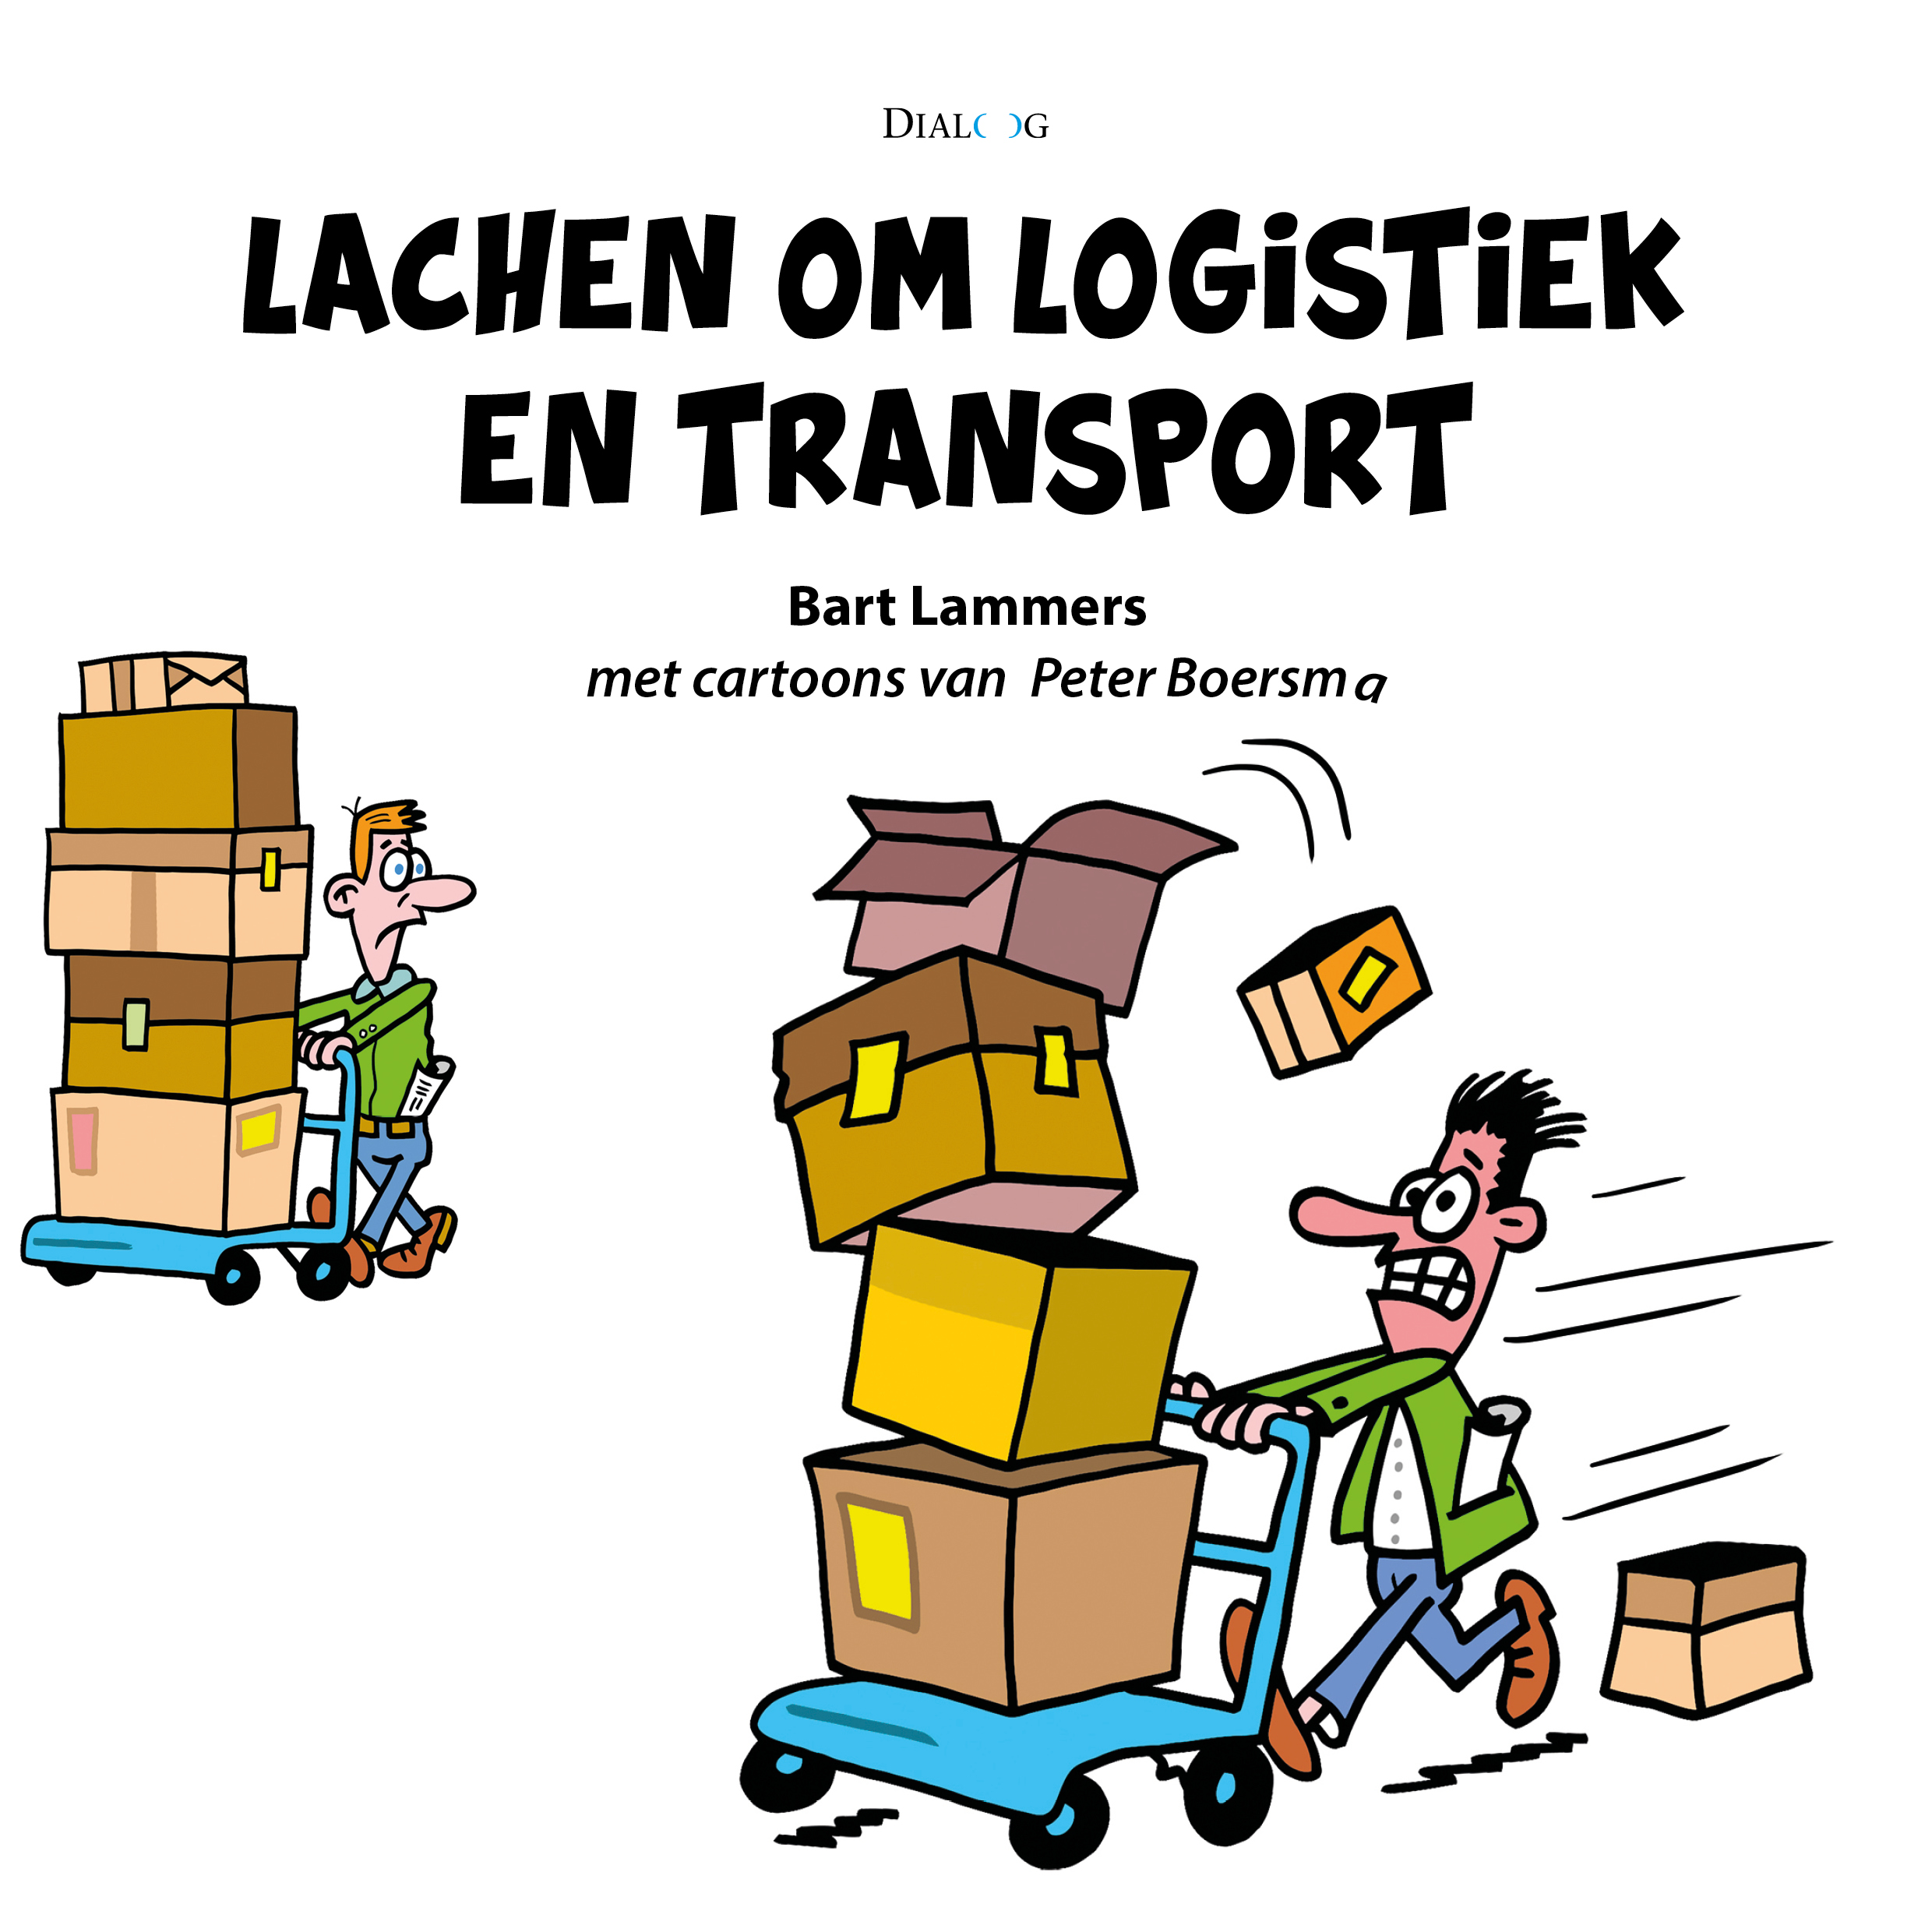 Lachen om logistiek en transport